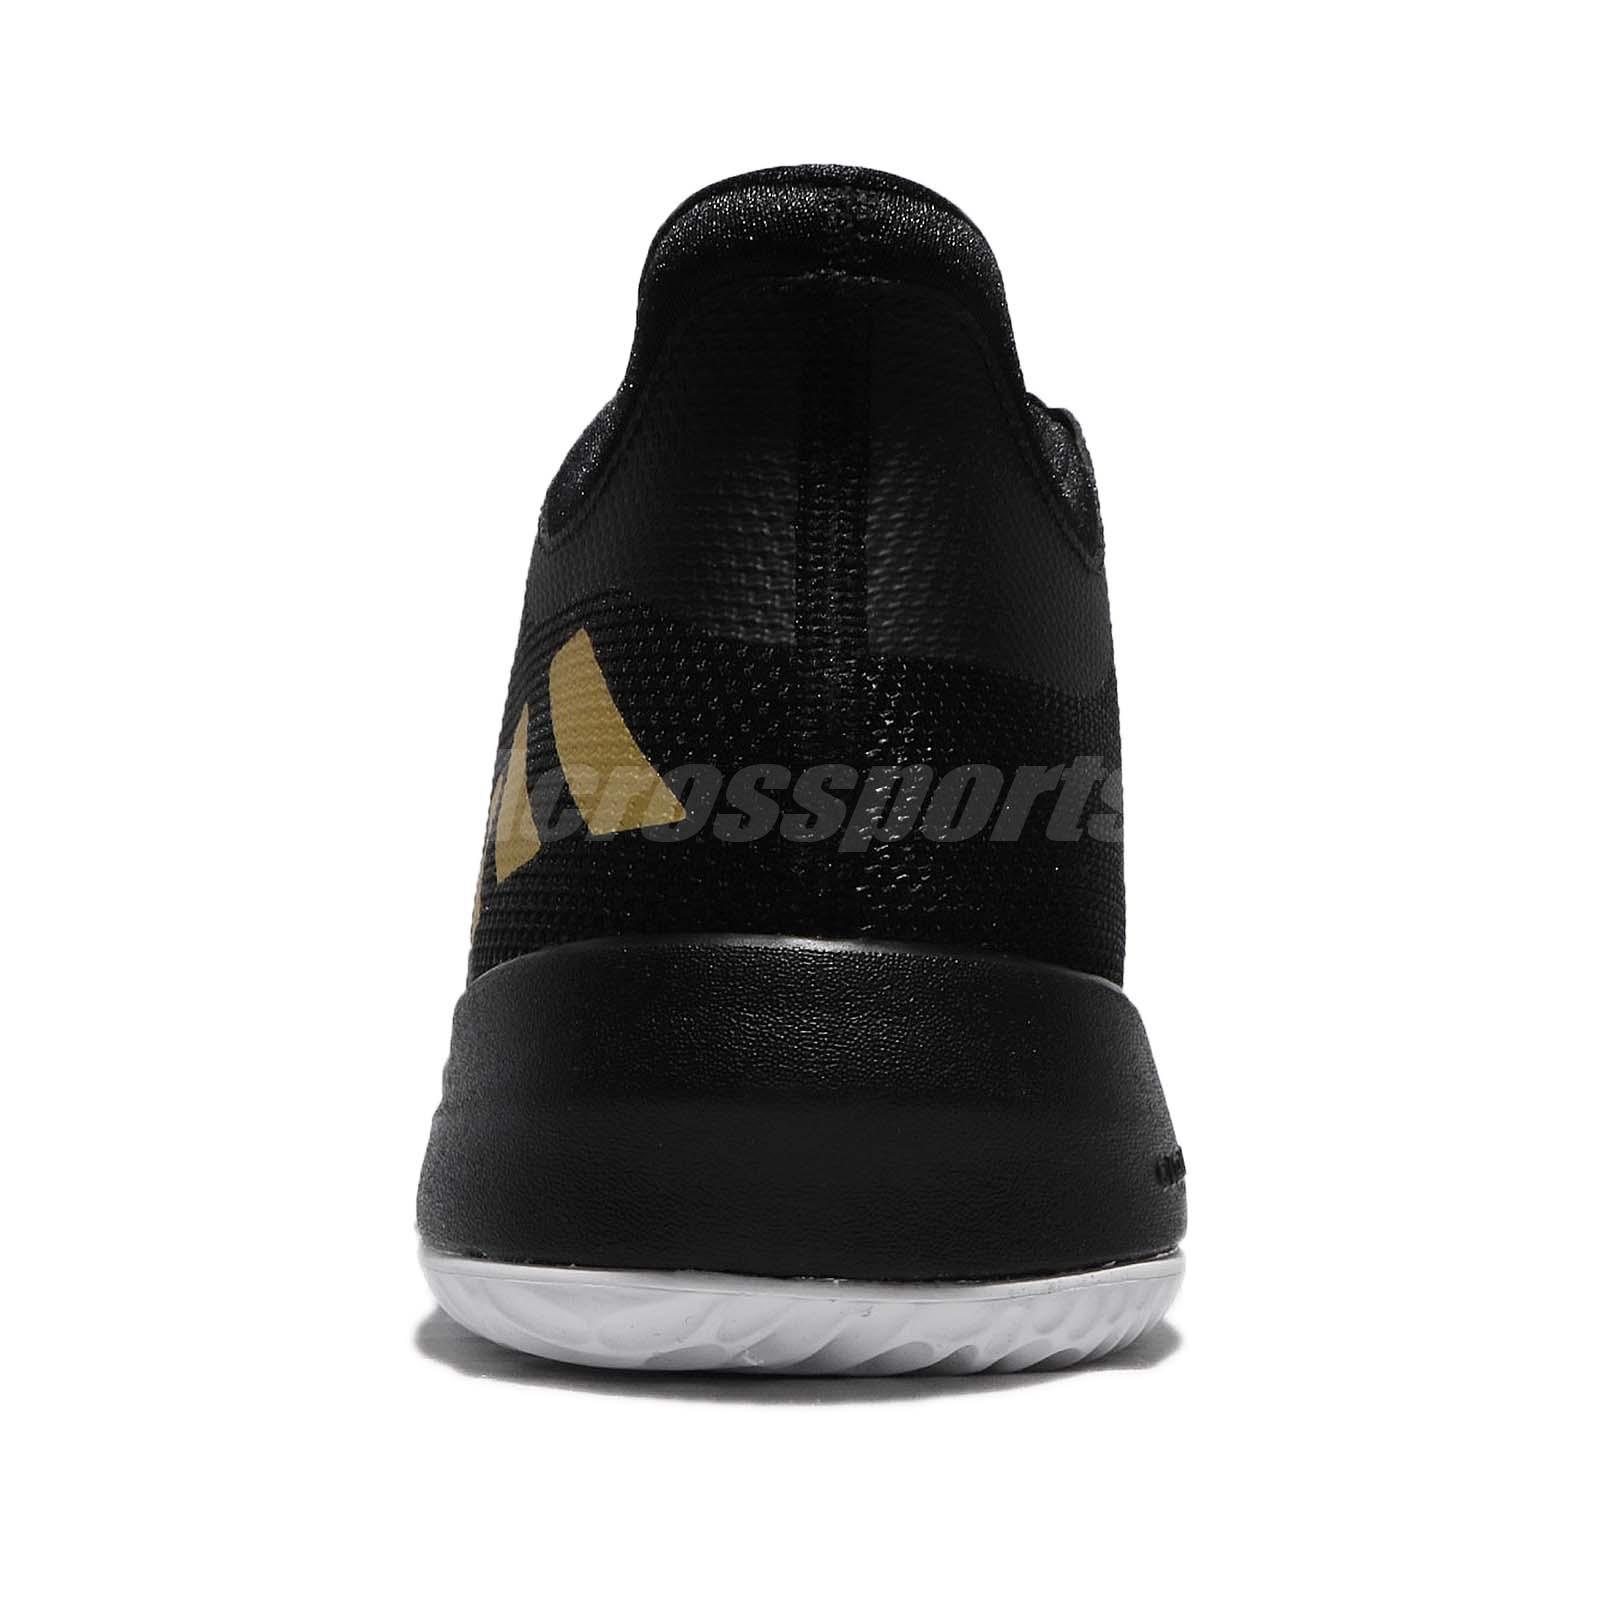 549338468a24 adidas D Rose Menace 3 III Derrick Black Gold White Men Basketball ...